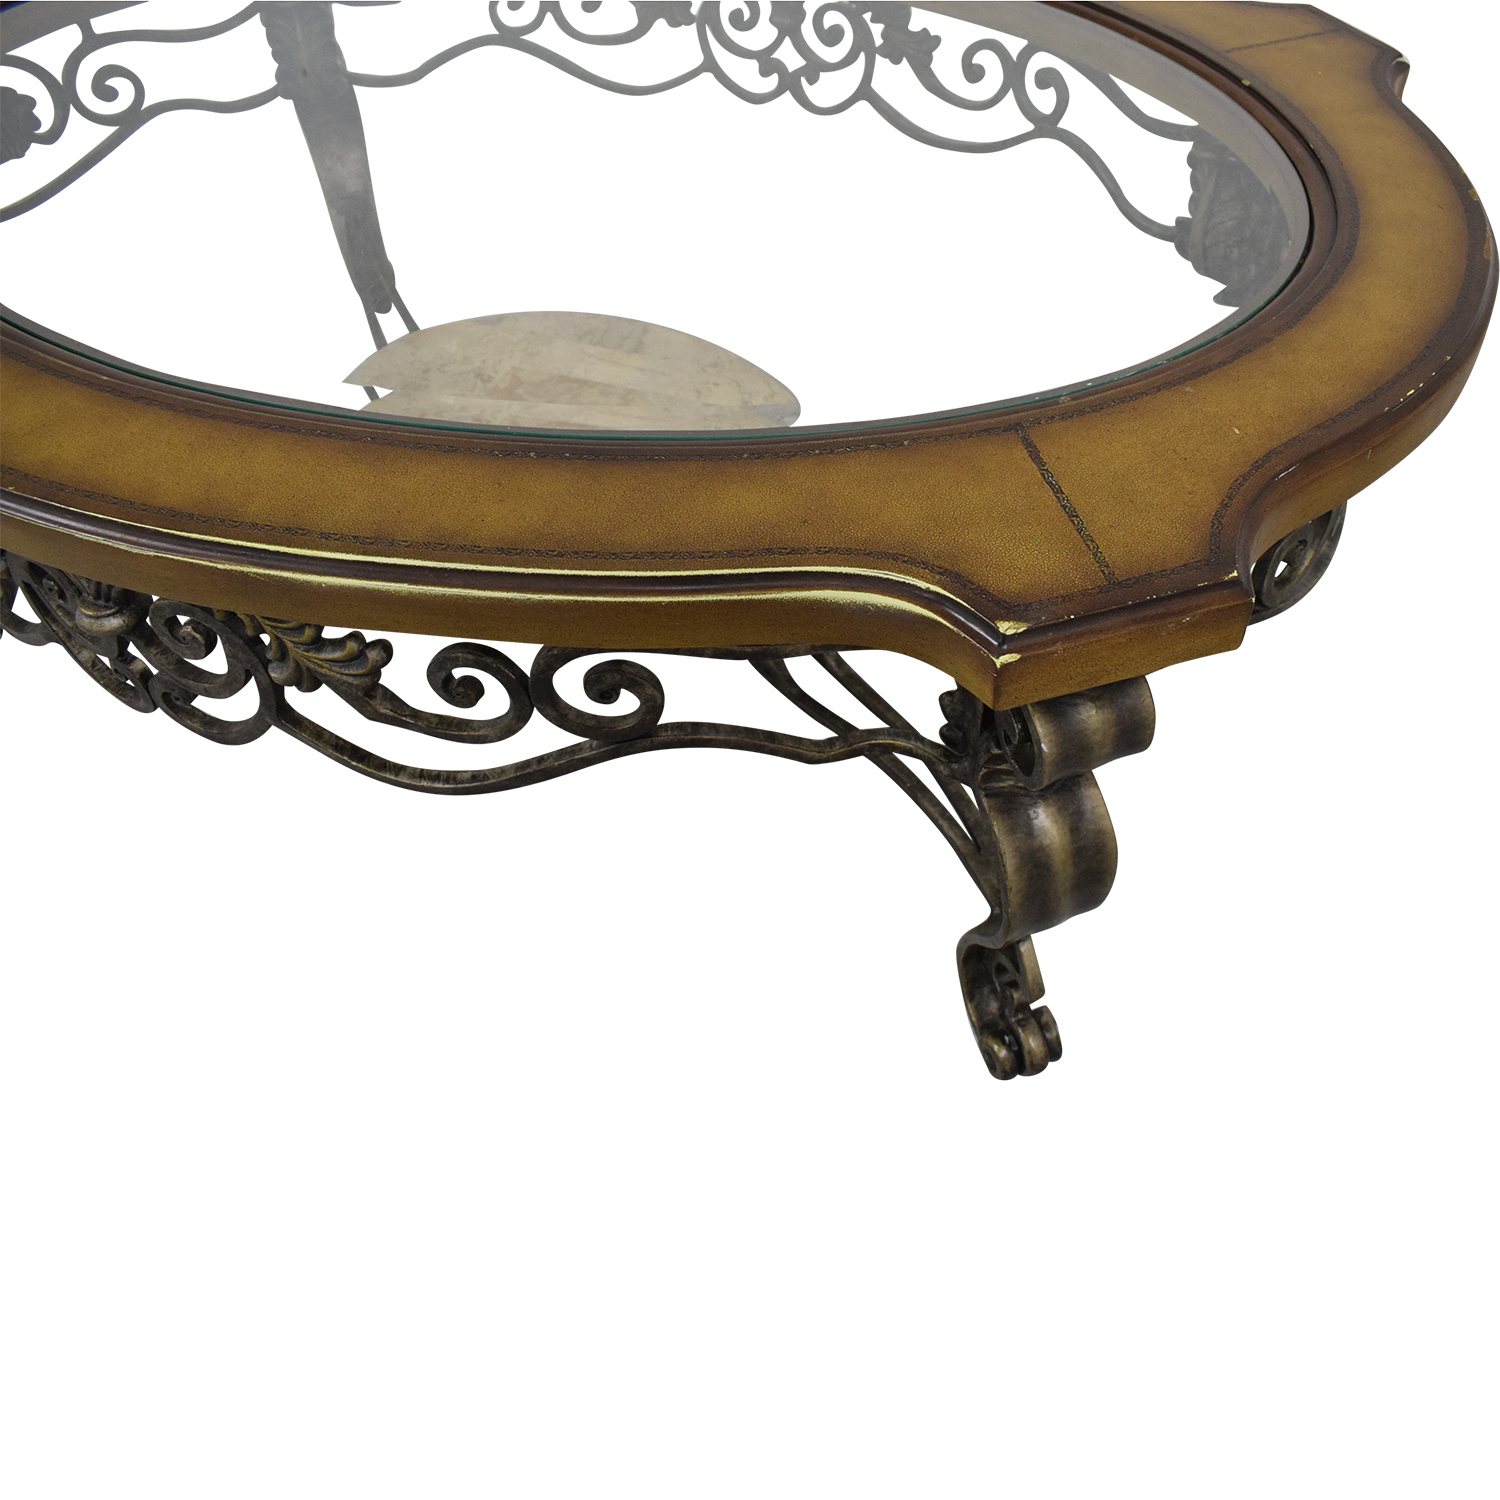 Thomasville Thomasville Style Oval Coffee Table second hand